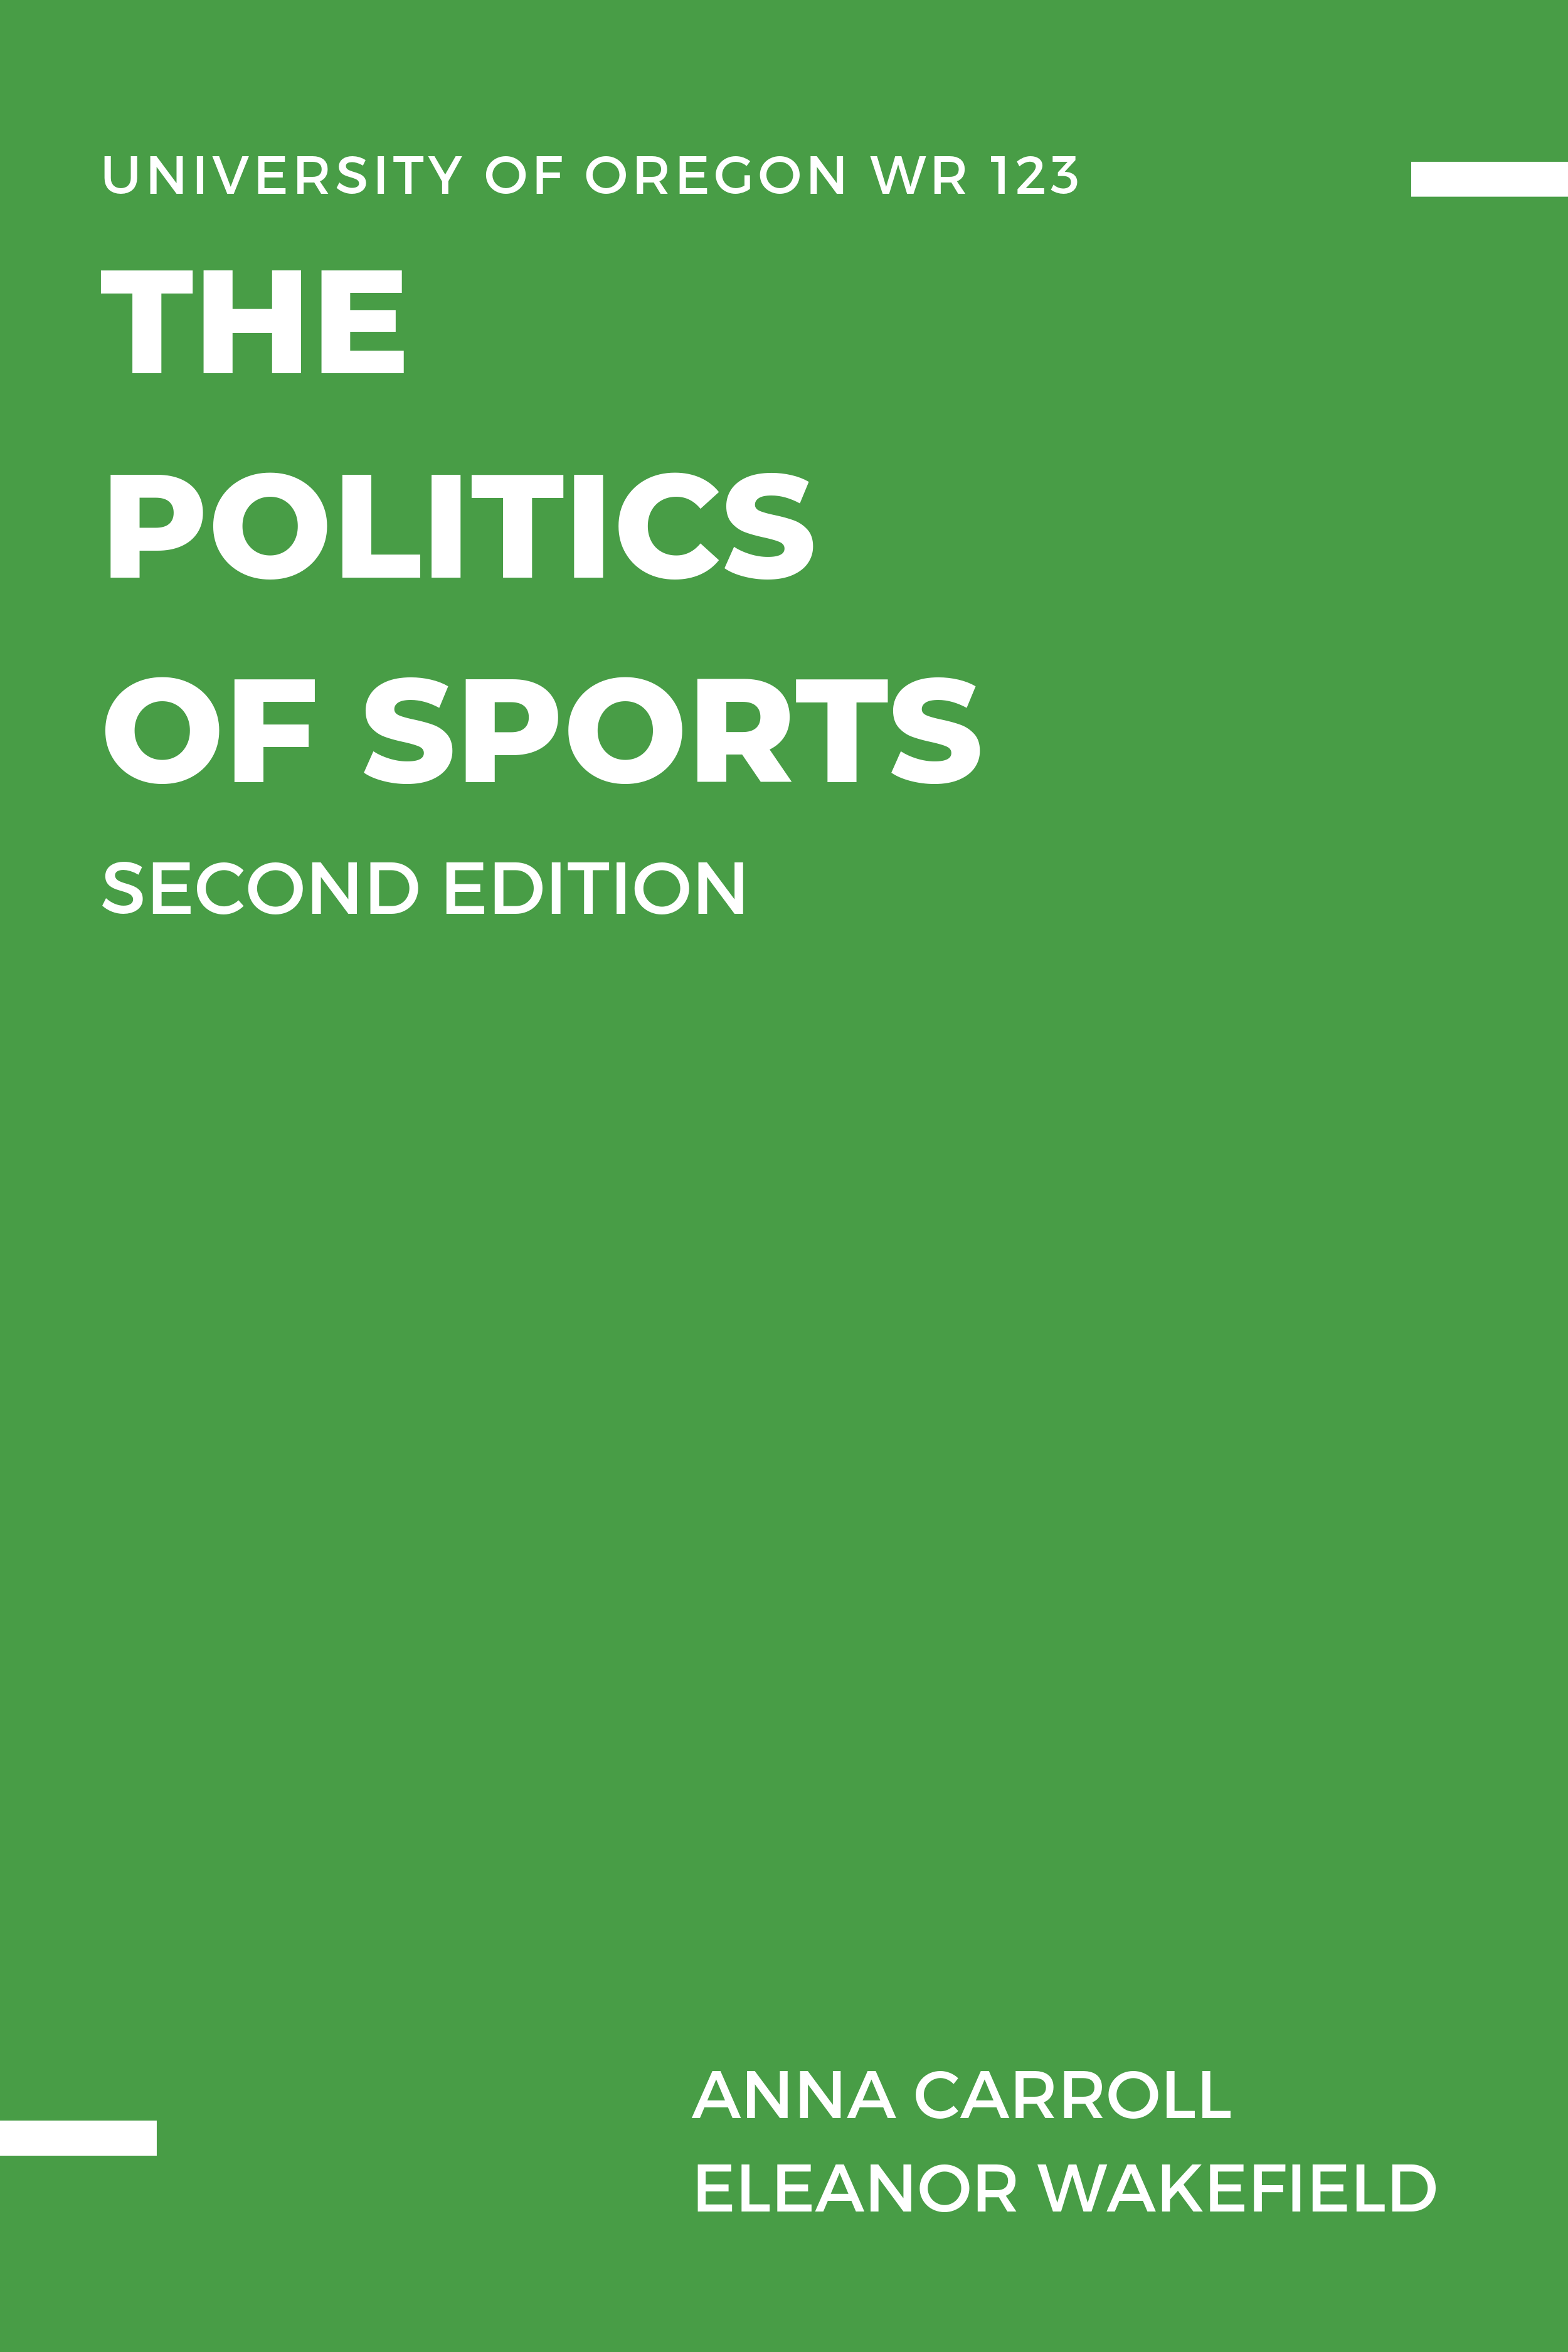 The Politics of Sports